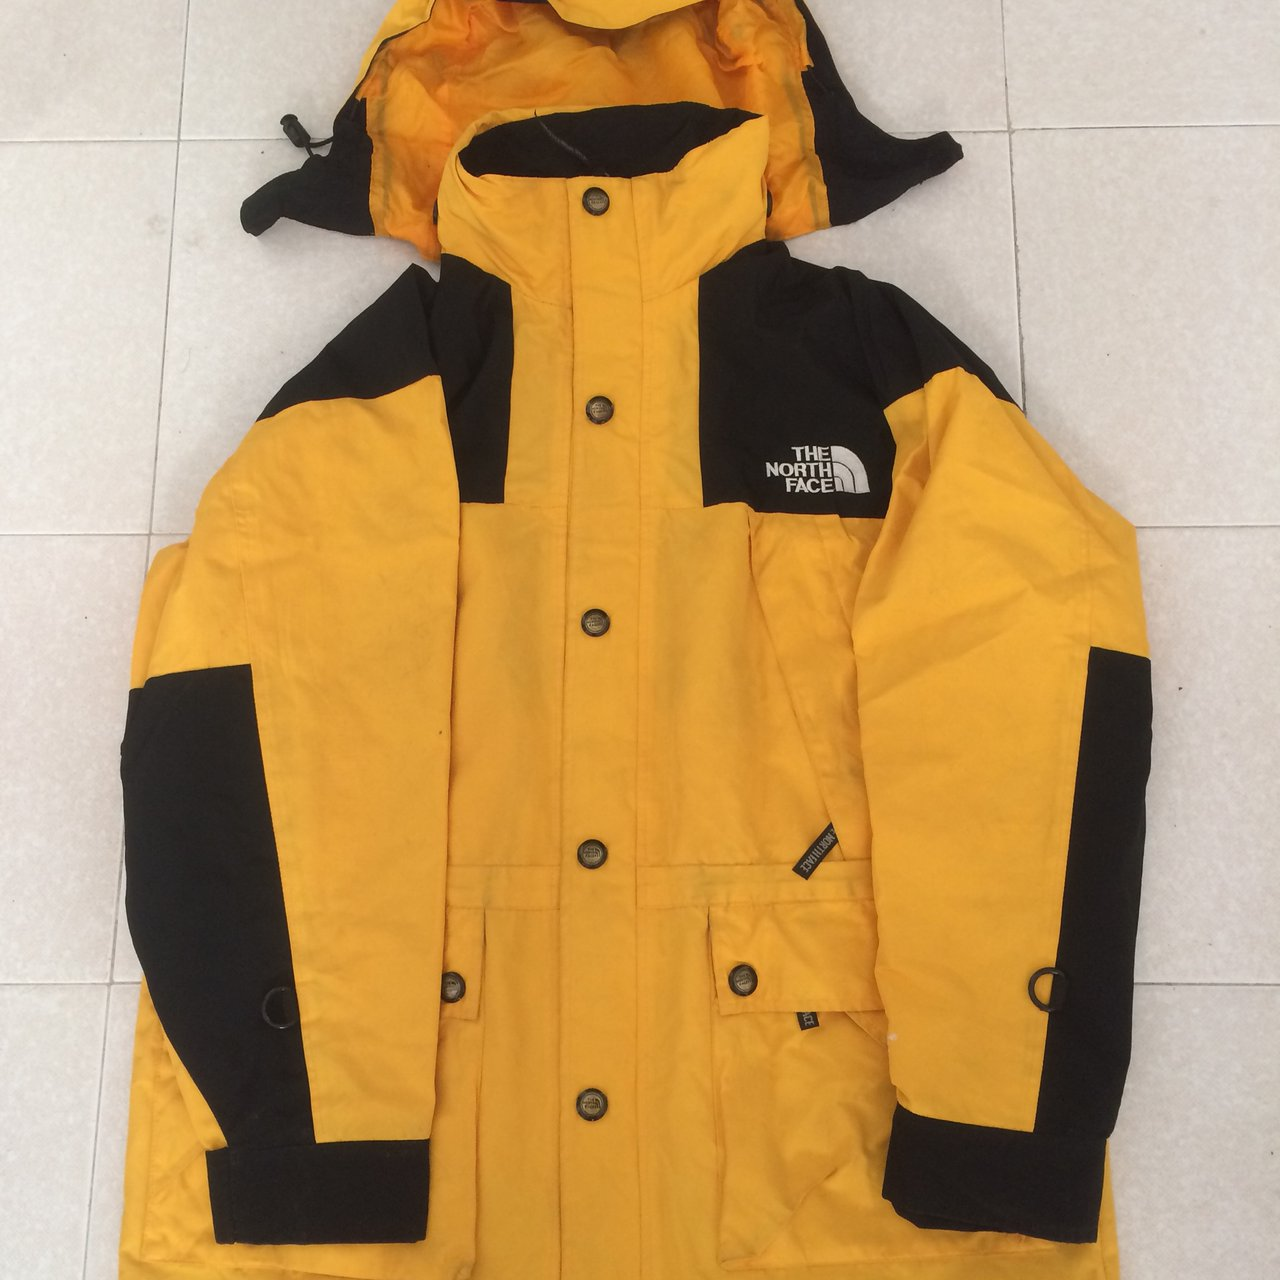 Vintage The North Face Gore Tex Jacket Yellow Black with is - Depop fb684d9ad